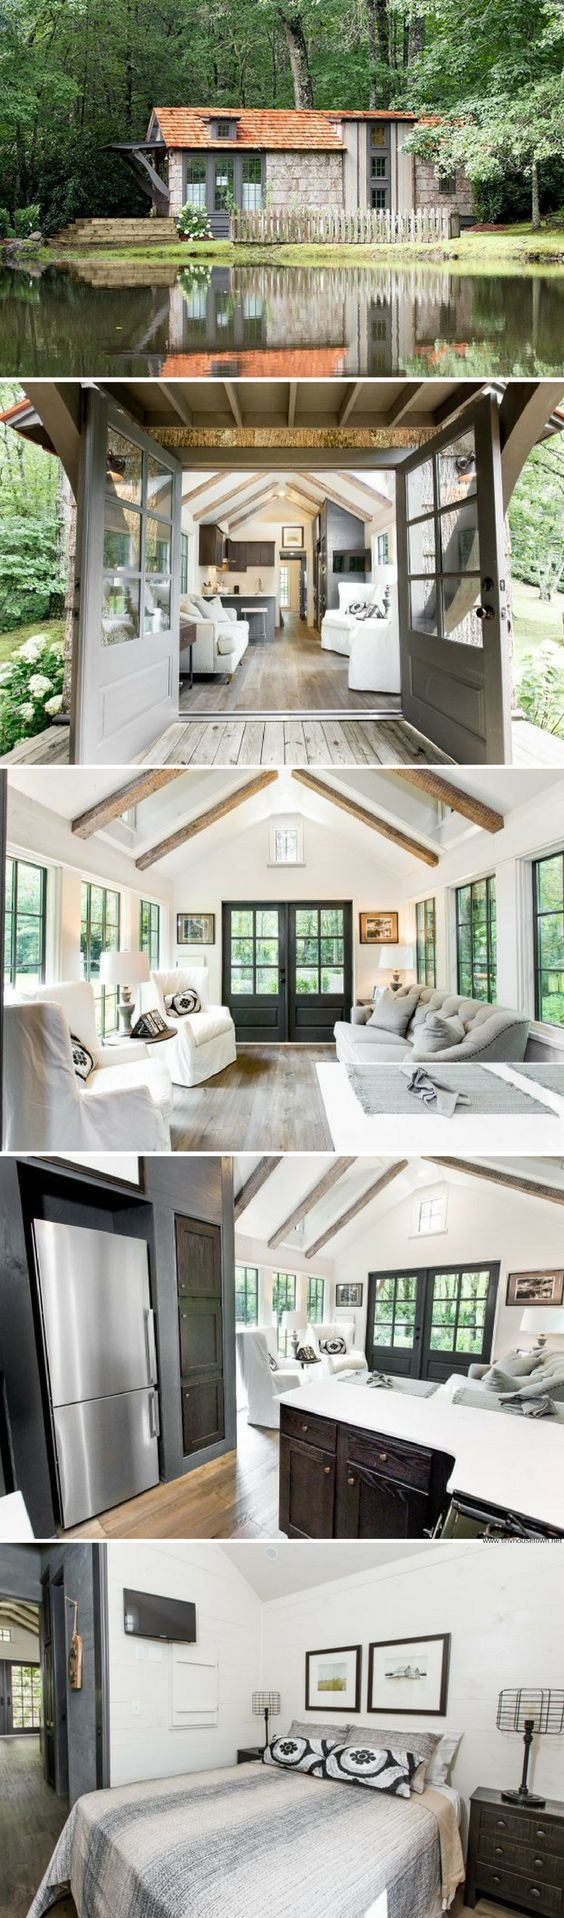 House And Homegirl Modern Cottage Inspiration - The low country a luxury southern inspired park model home from clayton homes